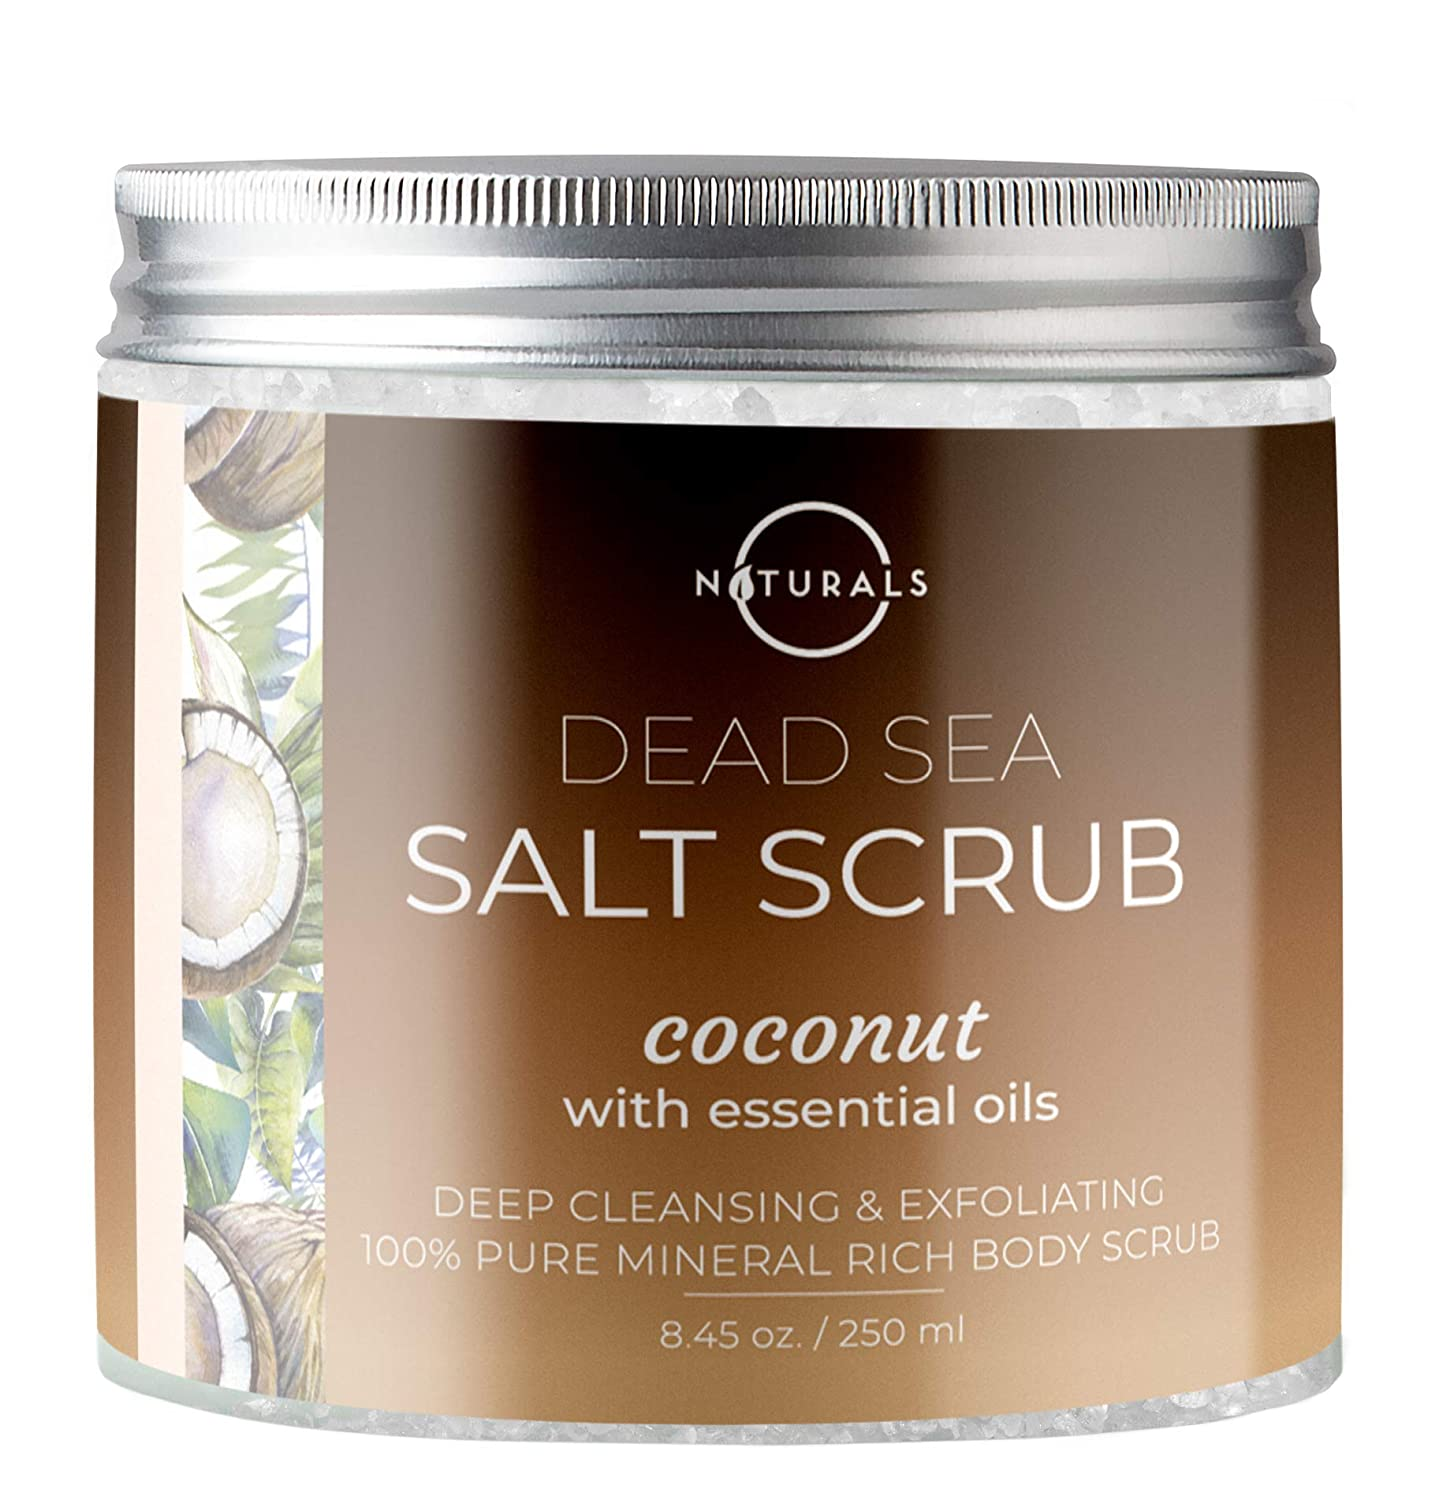 O Naturals Lemon & Mint Dead Sea Salt Scrub. Refreshing All Natural Exfoliator for Face, Hands, Body & Acne. Smooths, Renews & Revives Skin with Argan & Sweet Almond Oil. For Women & Men 8.45 Oz.